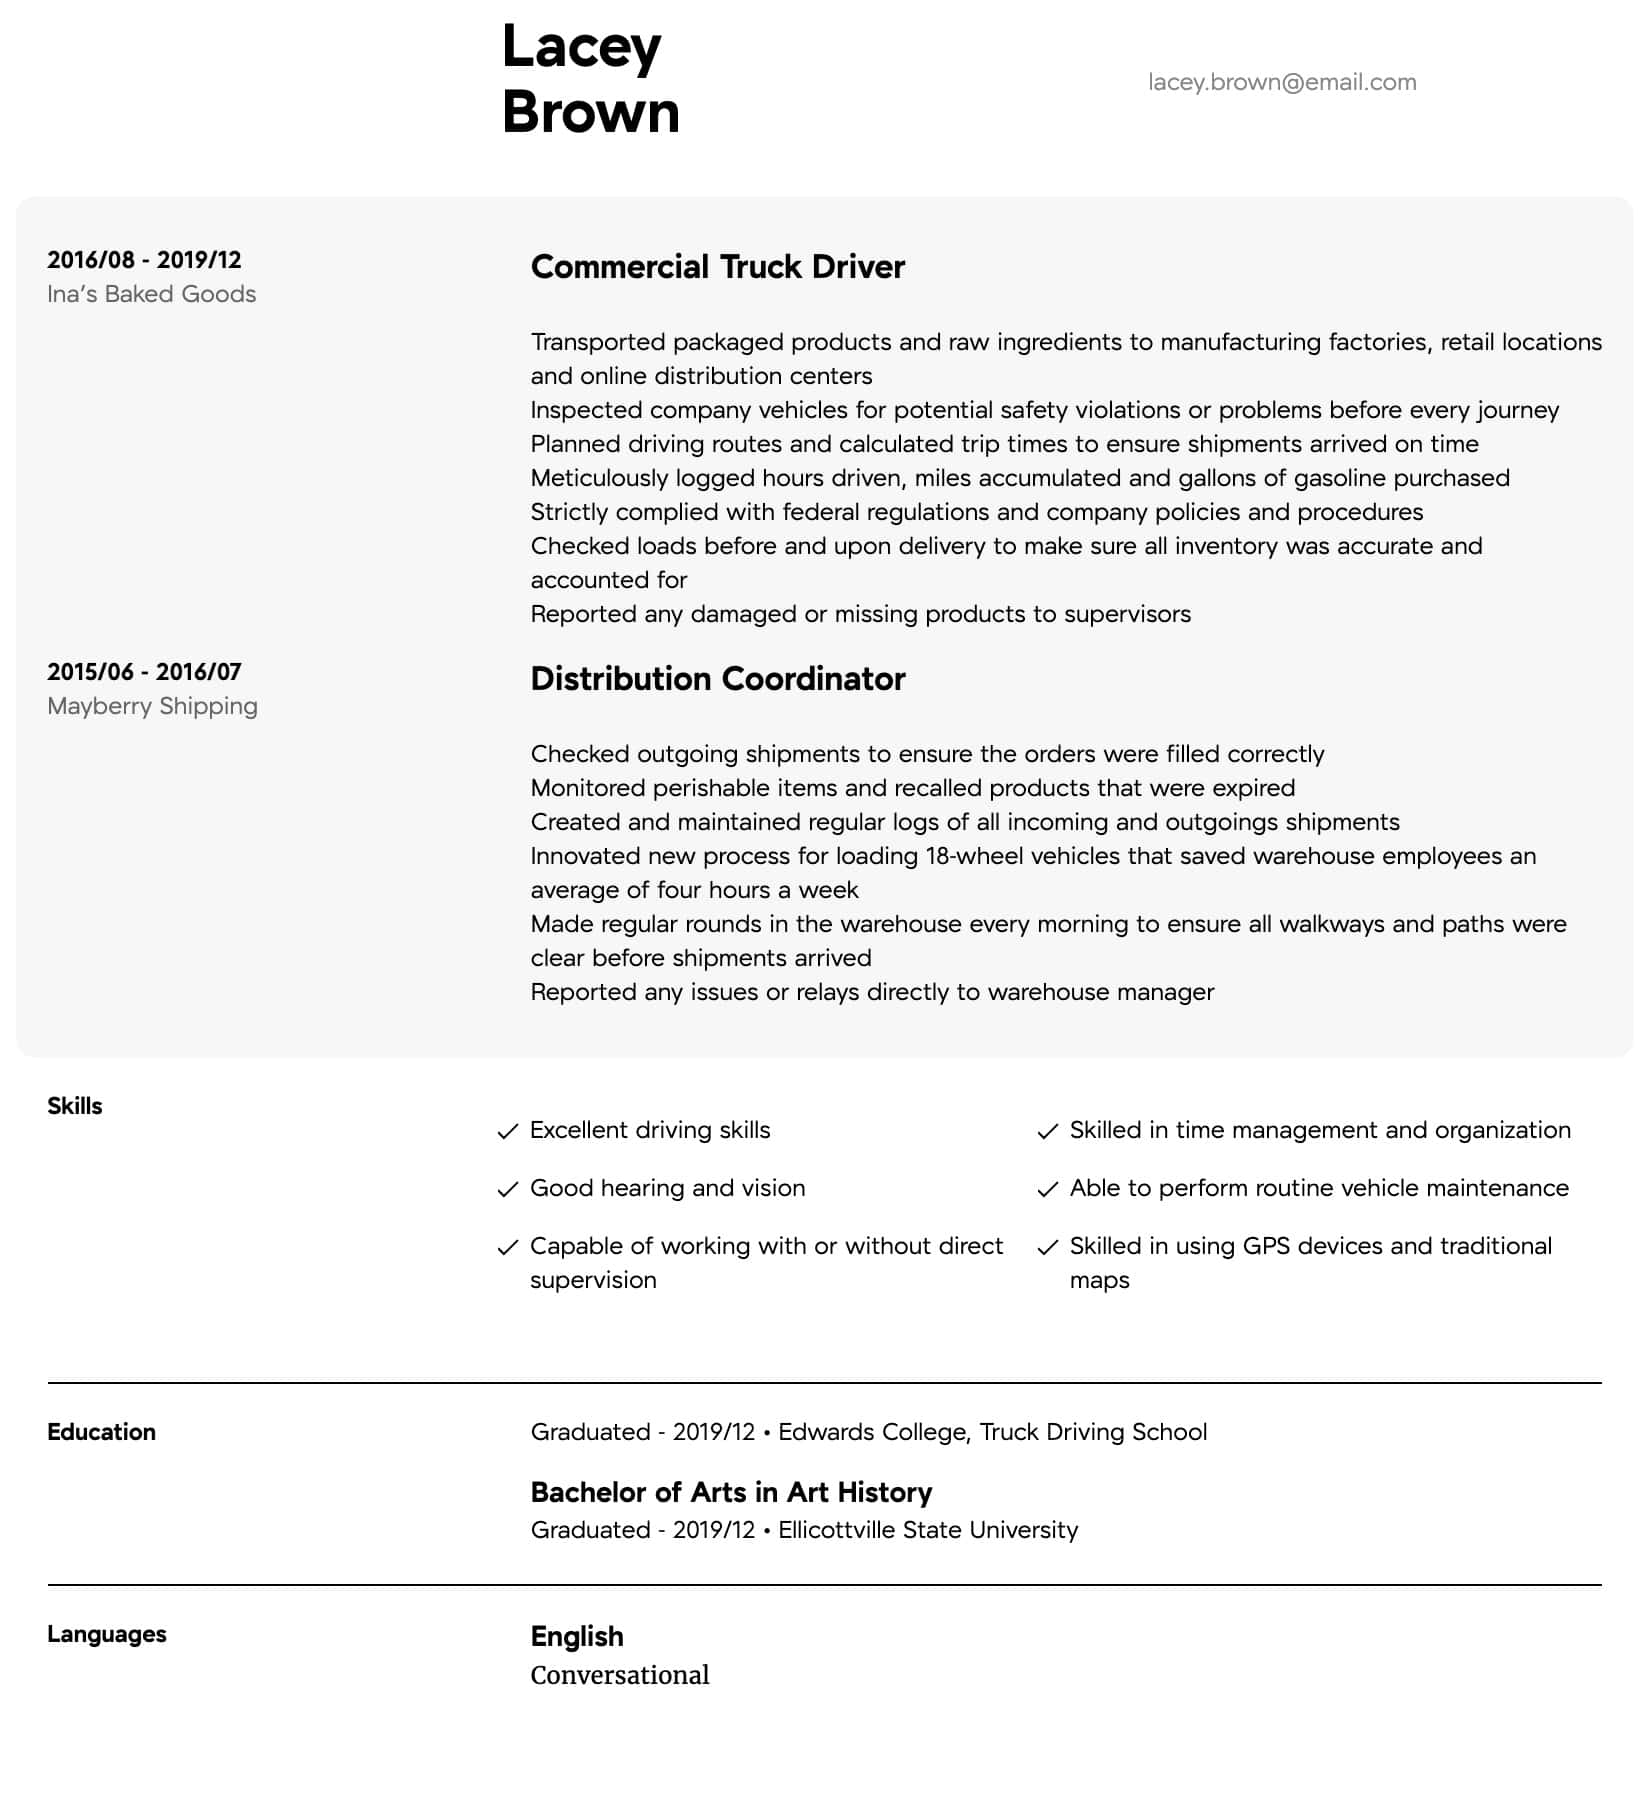 truck driver resume samples all experience levels cdl job description for intermediate rn Resume Cdl Truck Driver Job Description For Resume